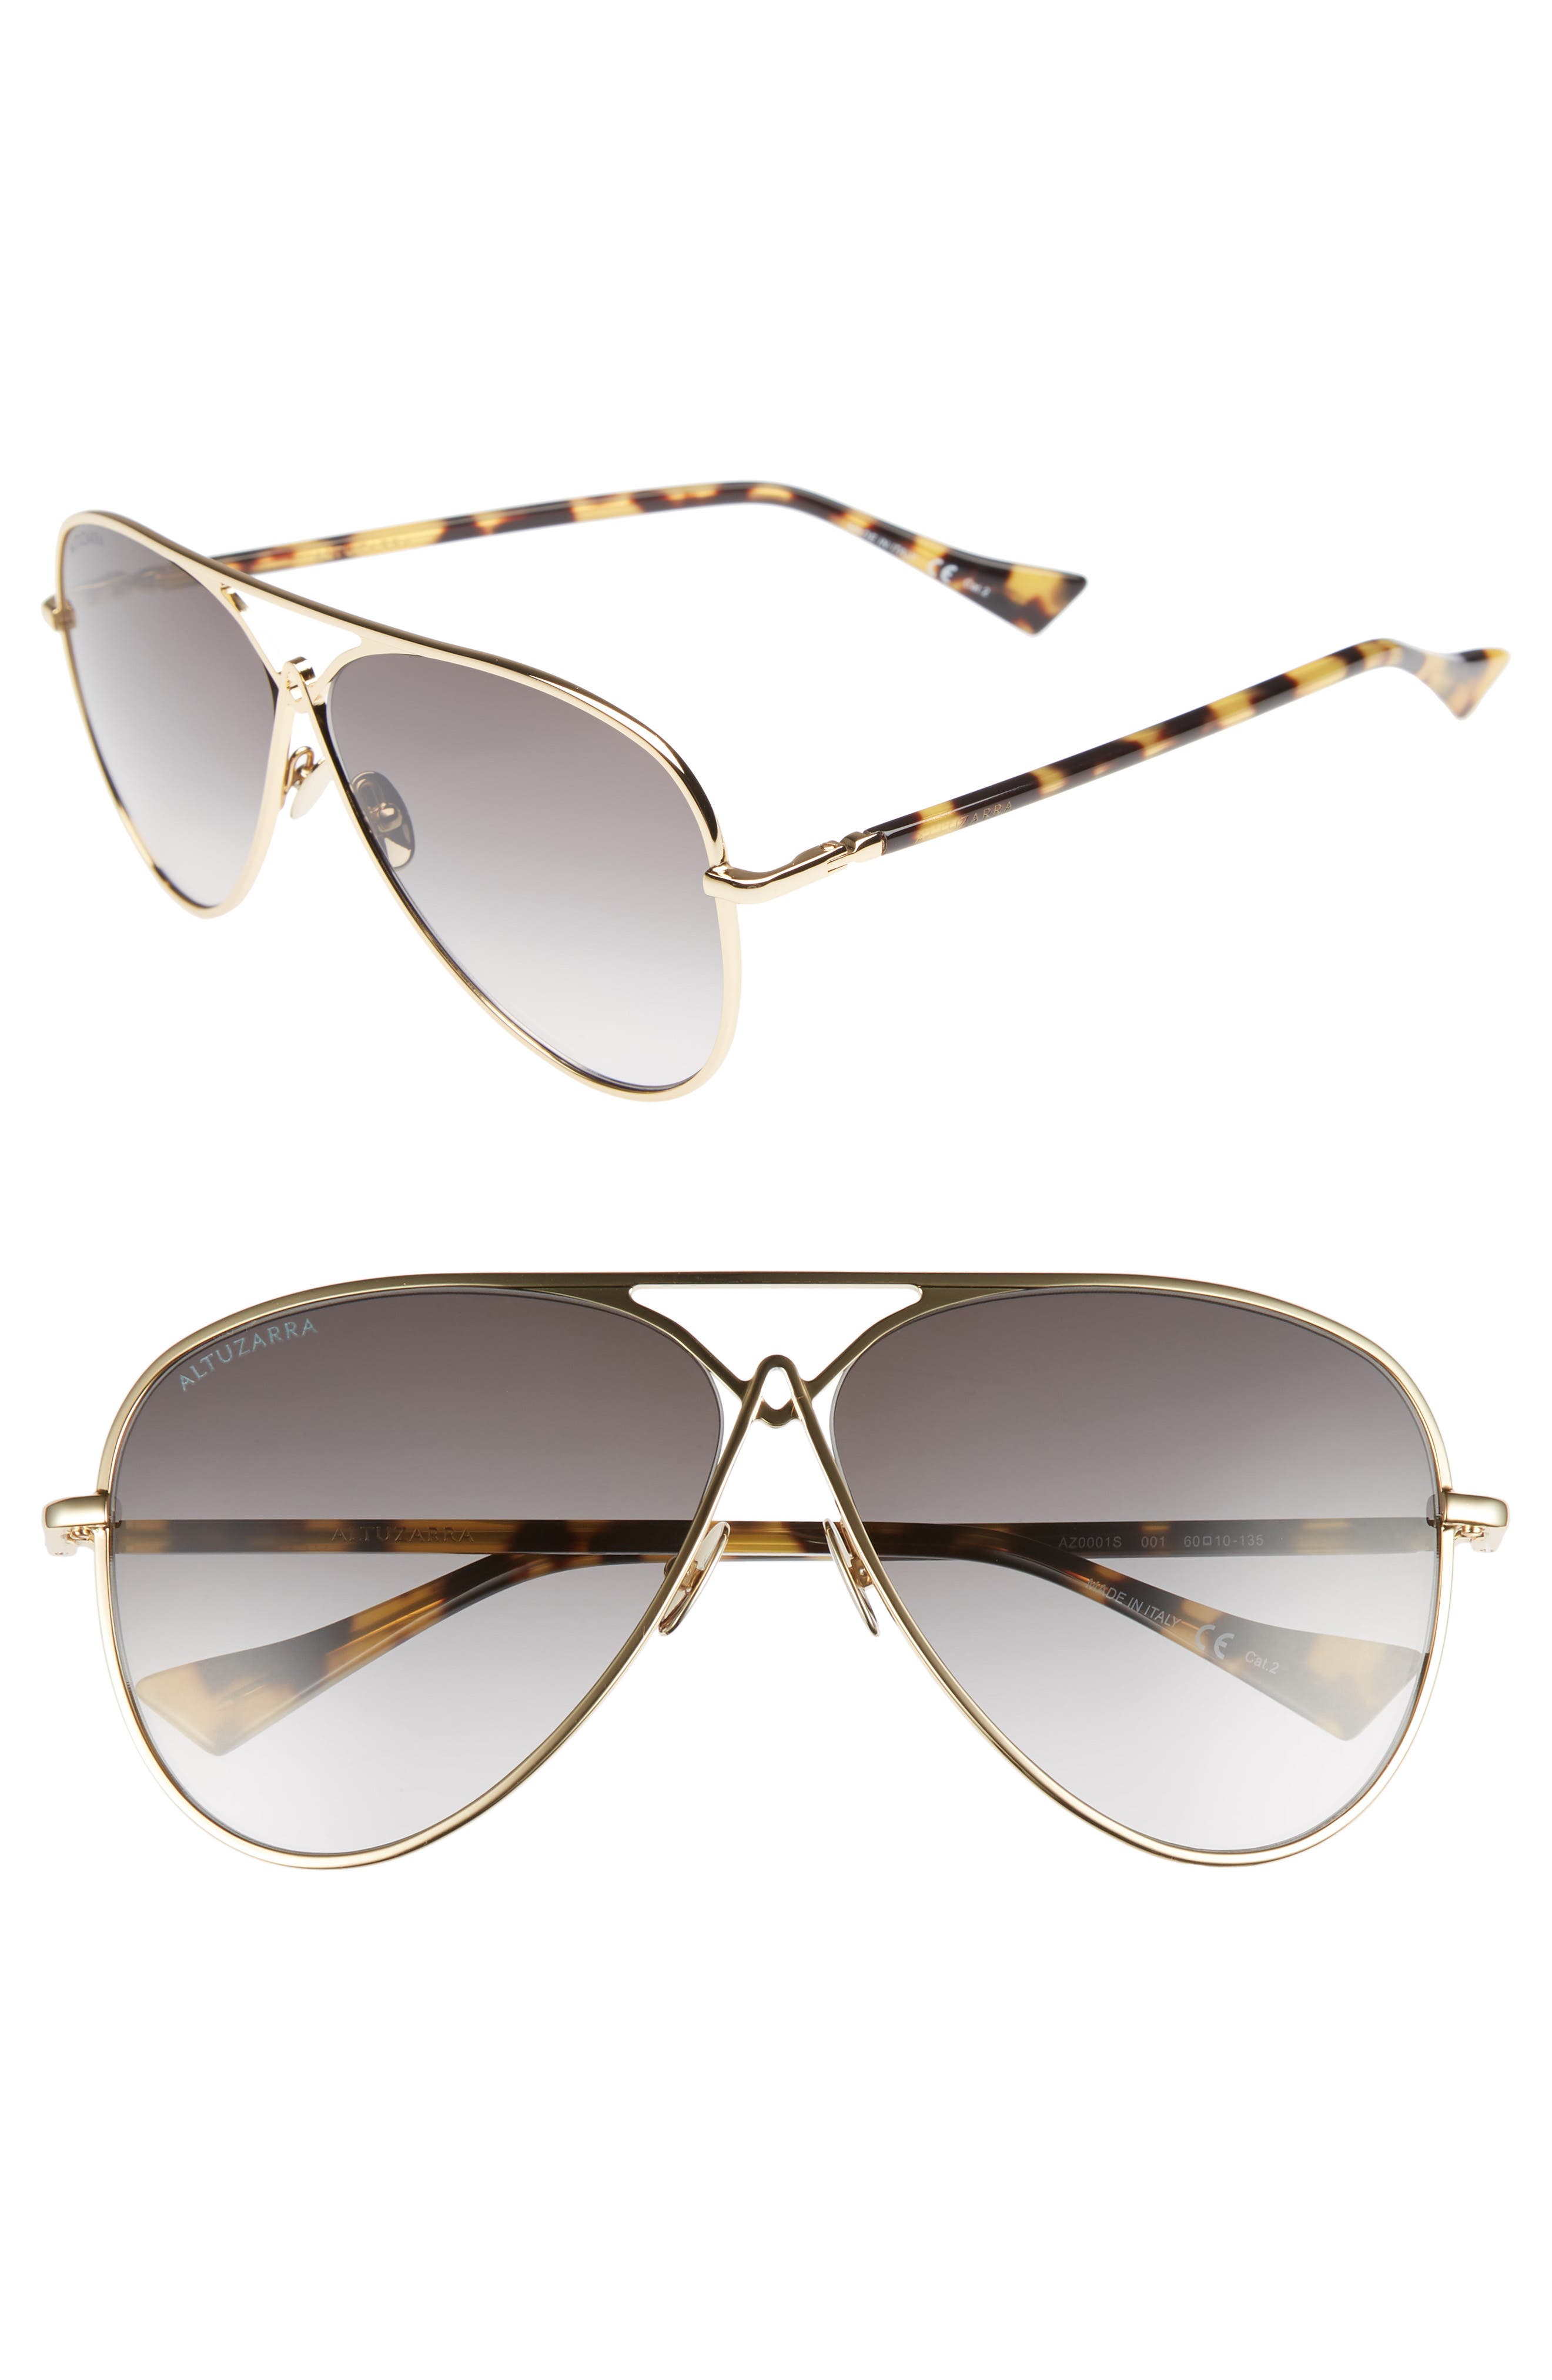 60MM METAL AVIATOR SUNGLASSES - GOLD